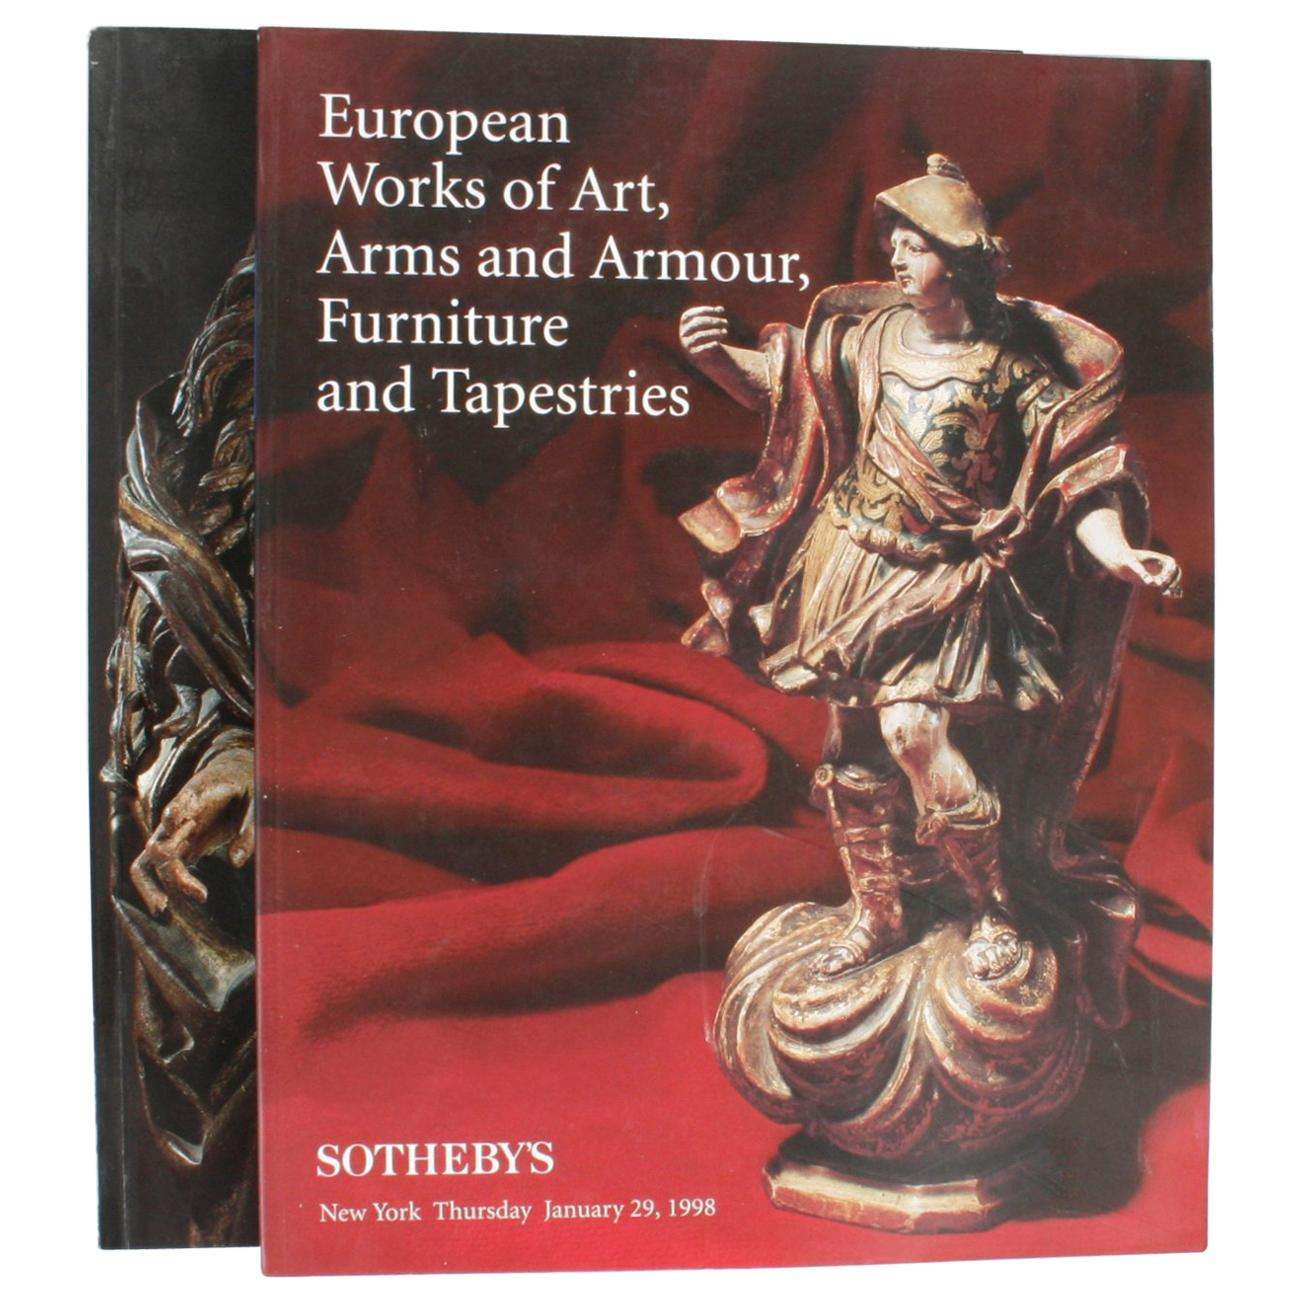 Pair of Sotheby's Catalogues on European Works of Art, Furniture and Tapestries